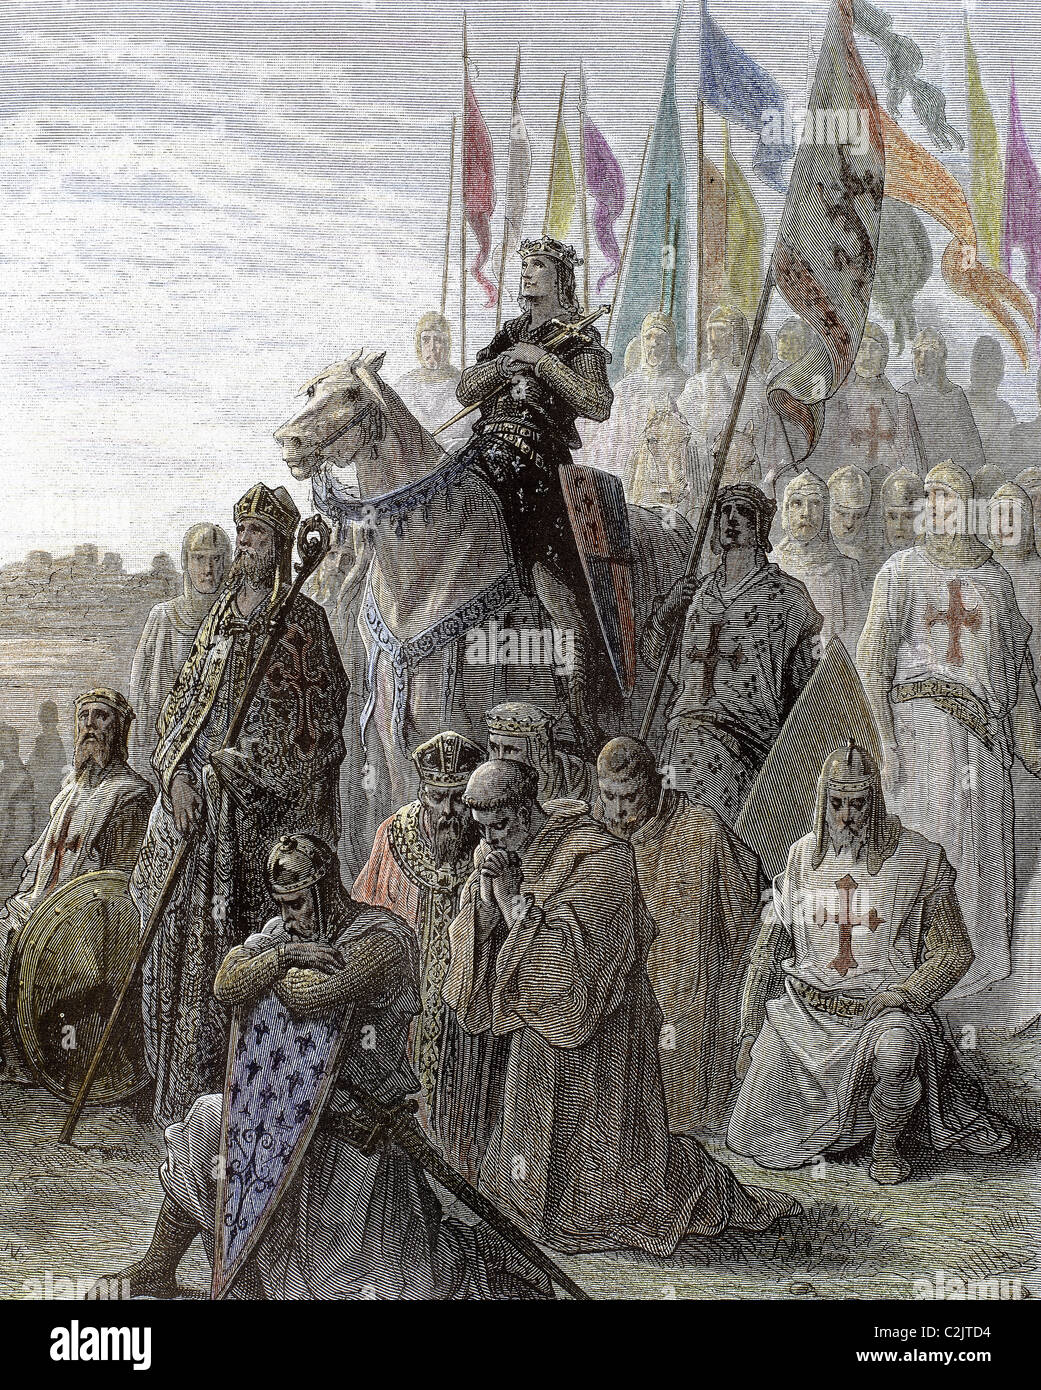 Richard I of England , known as Richard the Lionheart (1157-1199). Crusader forces praying before going into battle. - Stock Image